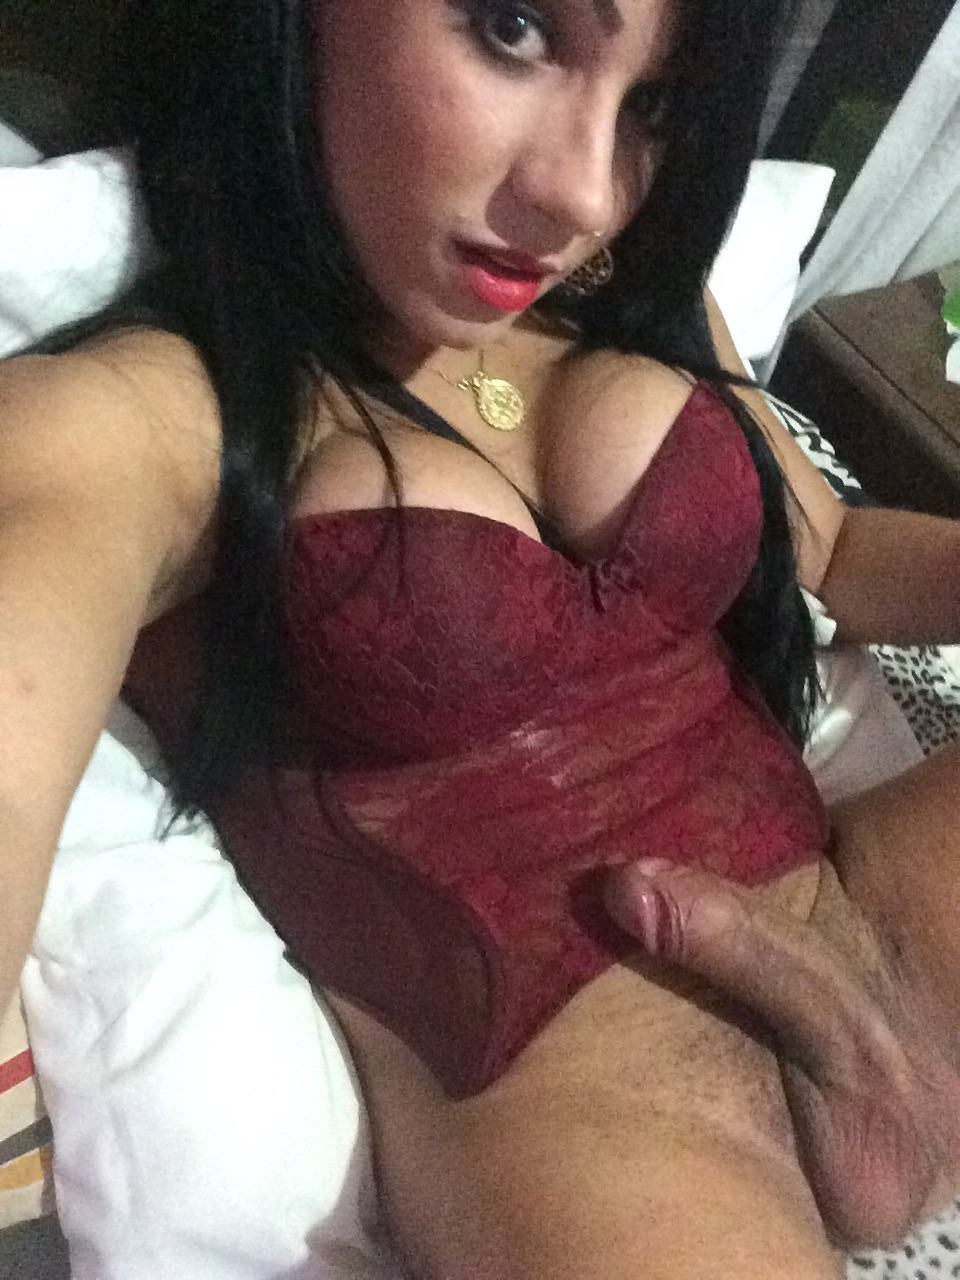 new stella marie bea small and stella marie ballbusting mobile porno #awesomecock #awesometitties #beautifultrap #curvedcock #daddywouldlovetotopthislittlehoney #gorgeousbabe #iwanttosuckhercock #ladyboy #nicecock #shemale #transsexual #ts